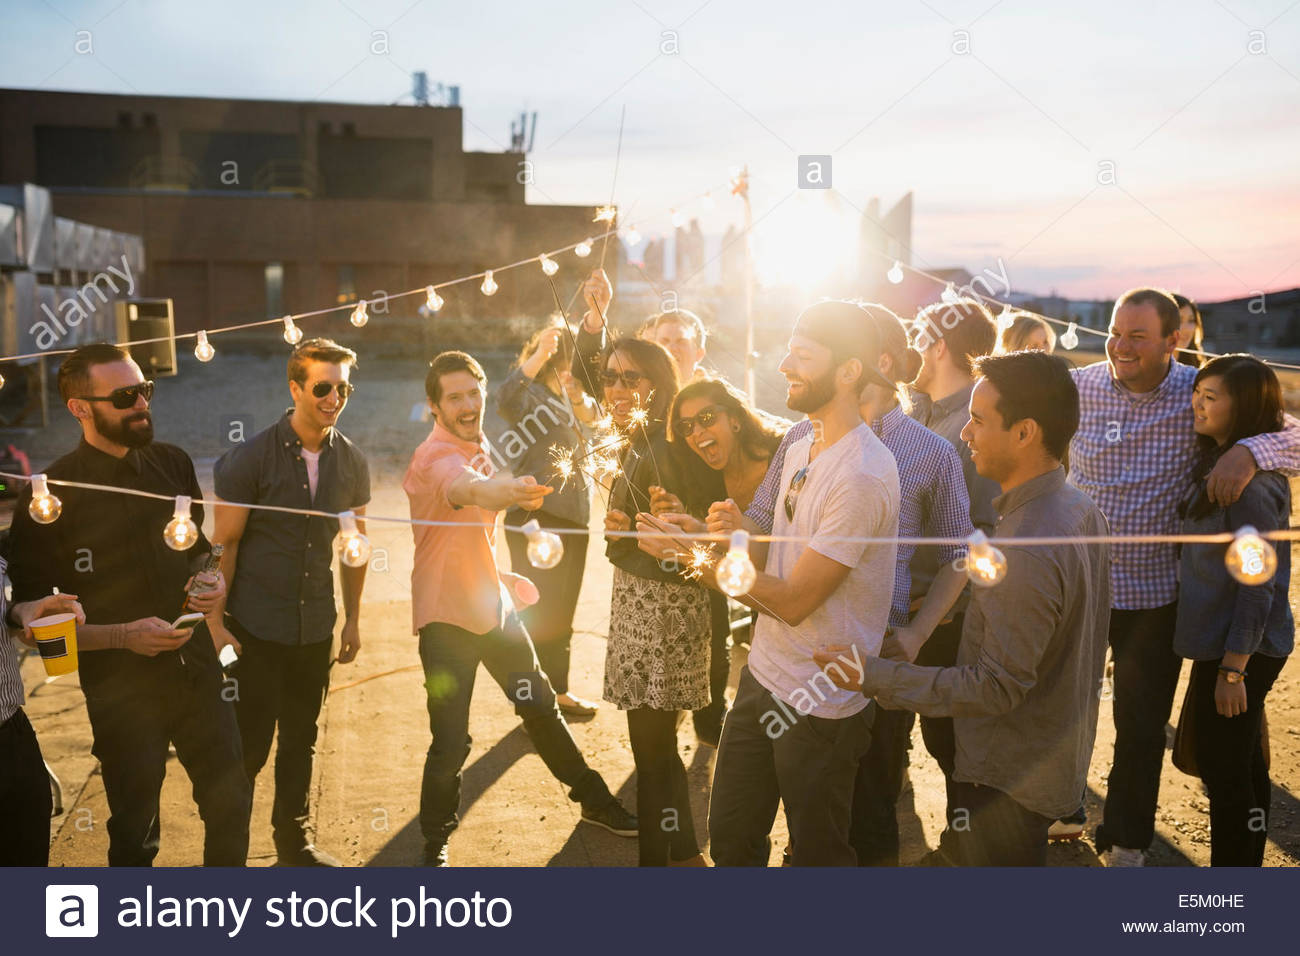 Friends with sparklers enjoying urban rooftop party - Stock Image